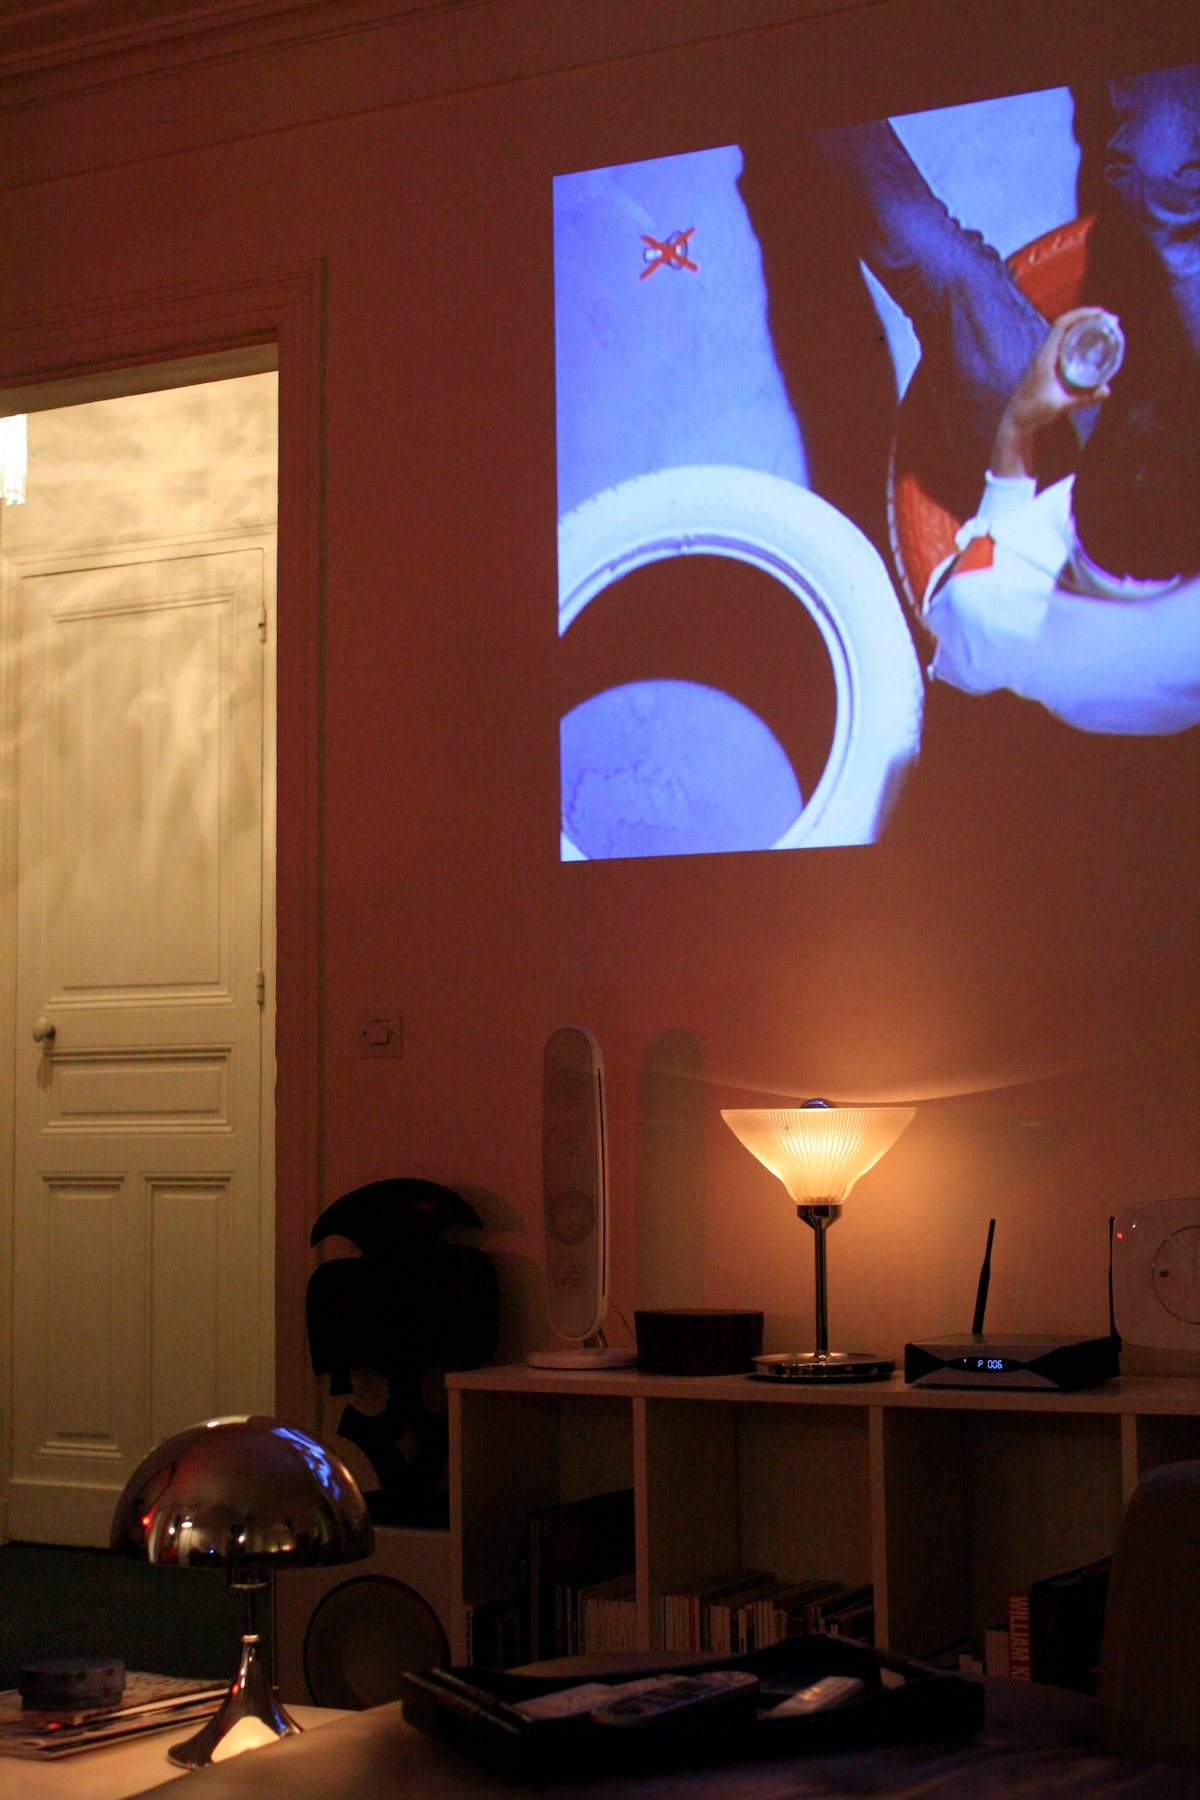 Giant Home cinema projected on the wall